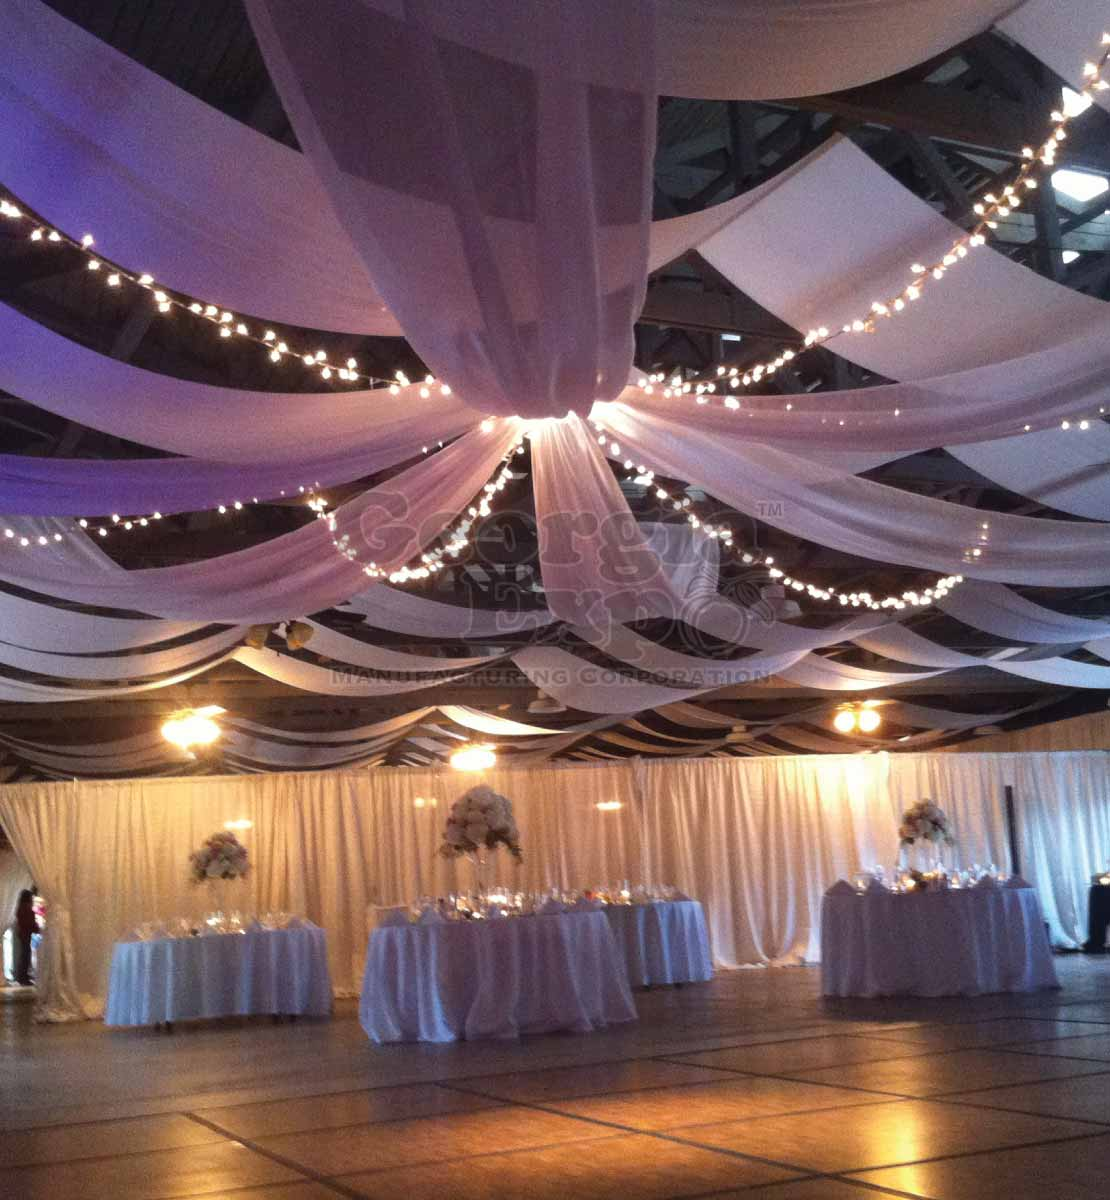 Ceiling Drape Kit 6 Panel 40ft Covers Up To 80ft Sheer Sheer Ceiling Drape Kits Wedding Decor Georgia Expo